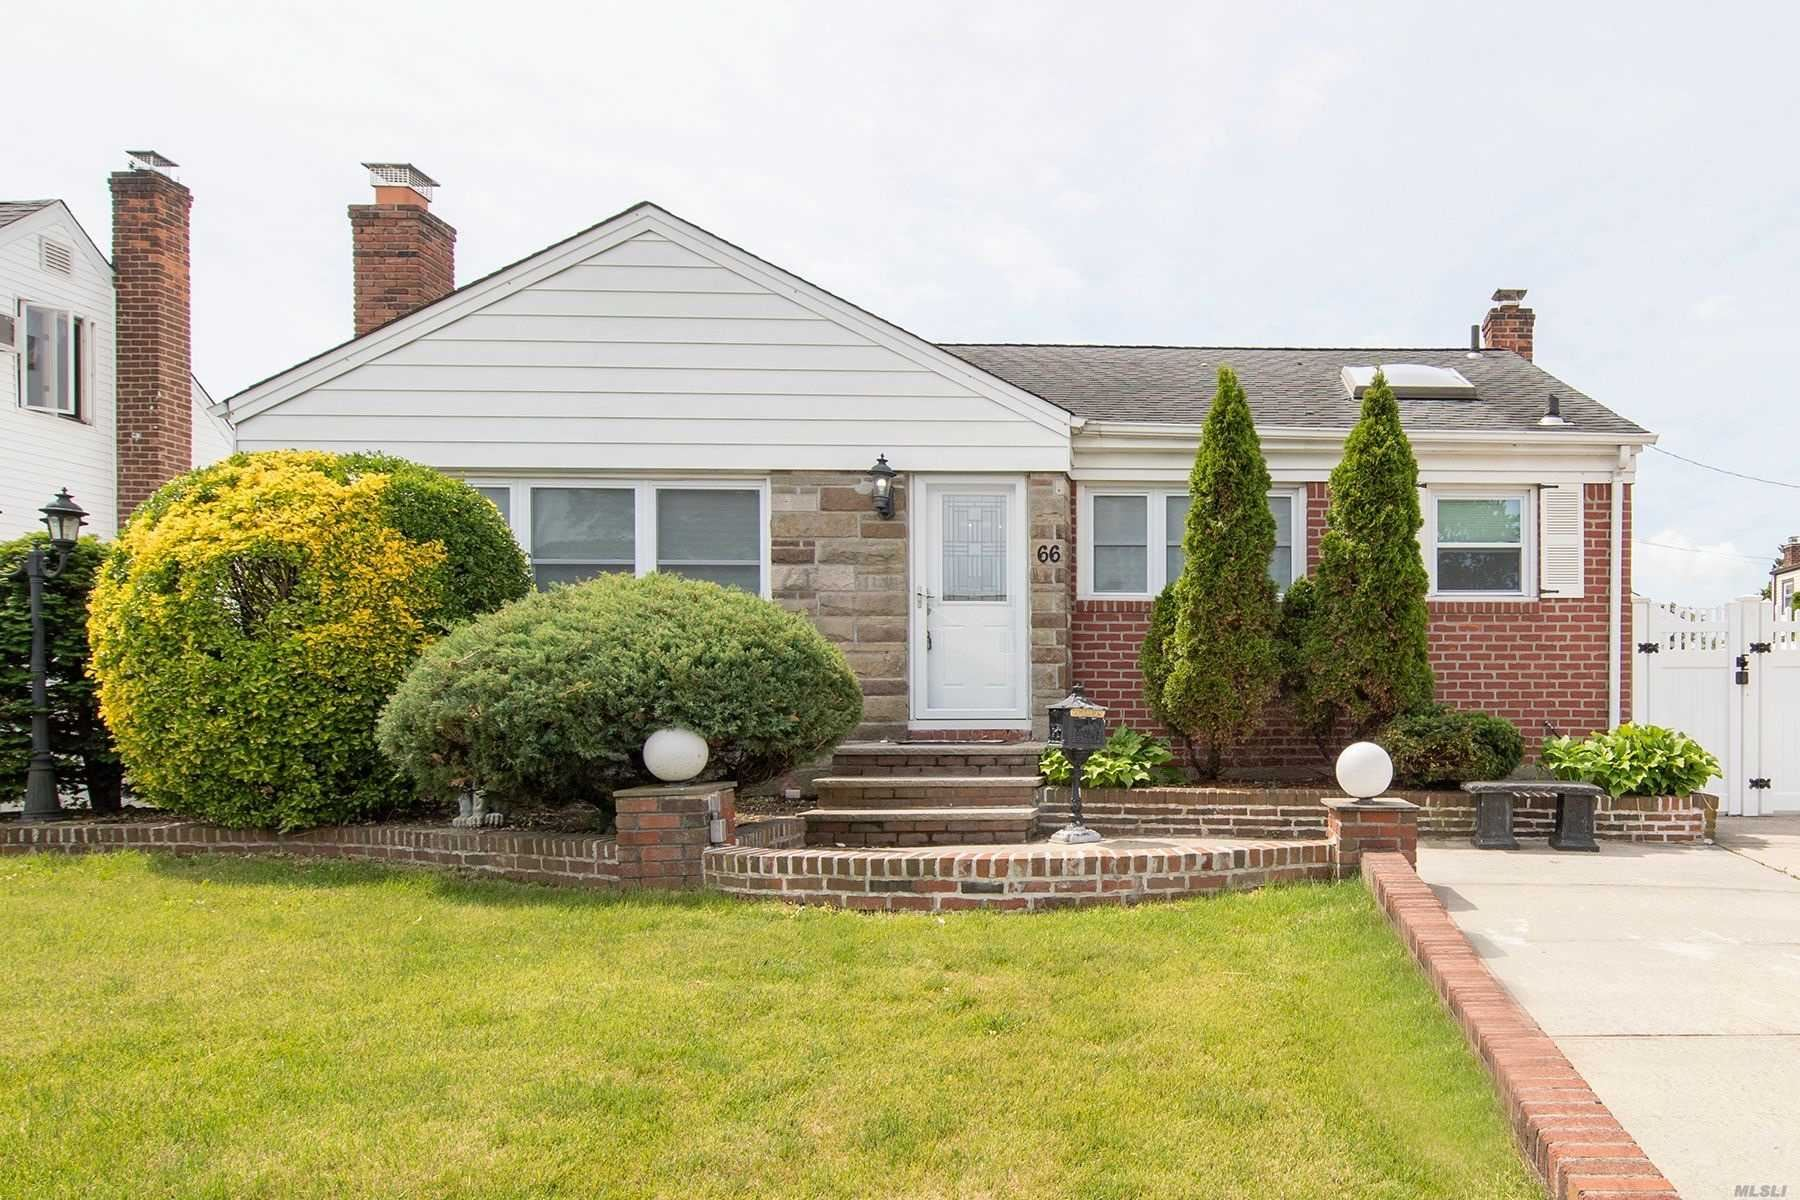 66 Lois Court, East Meadow, NY 11554 - MLS#: 3219988